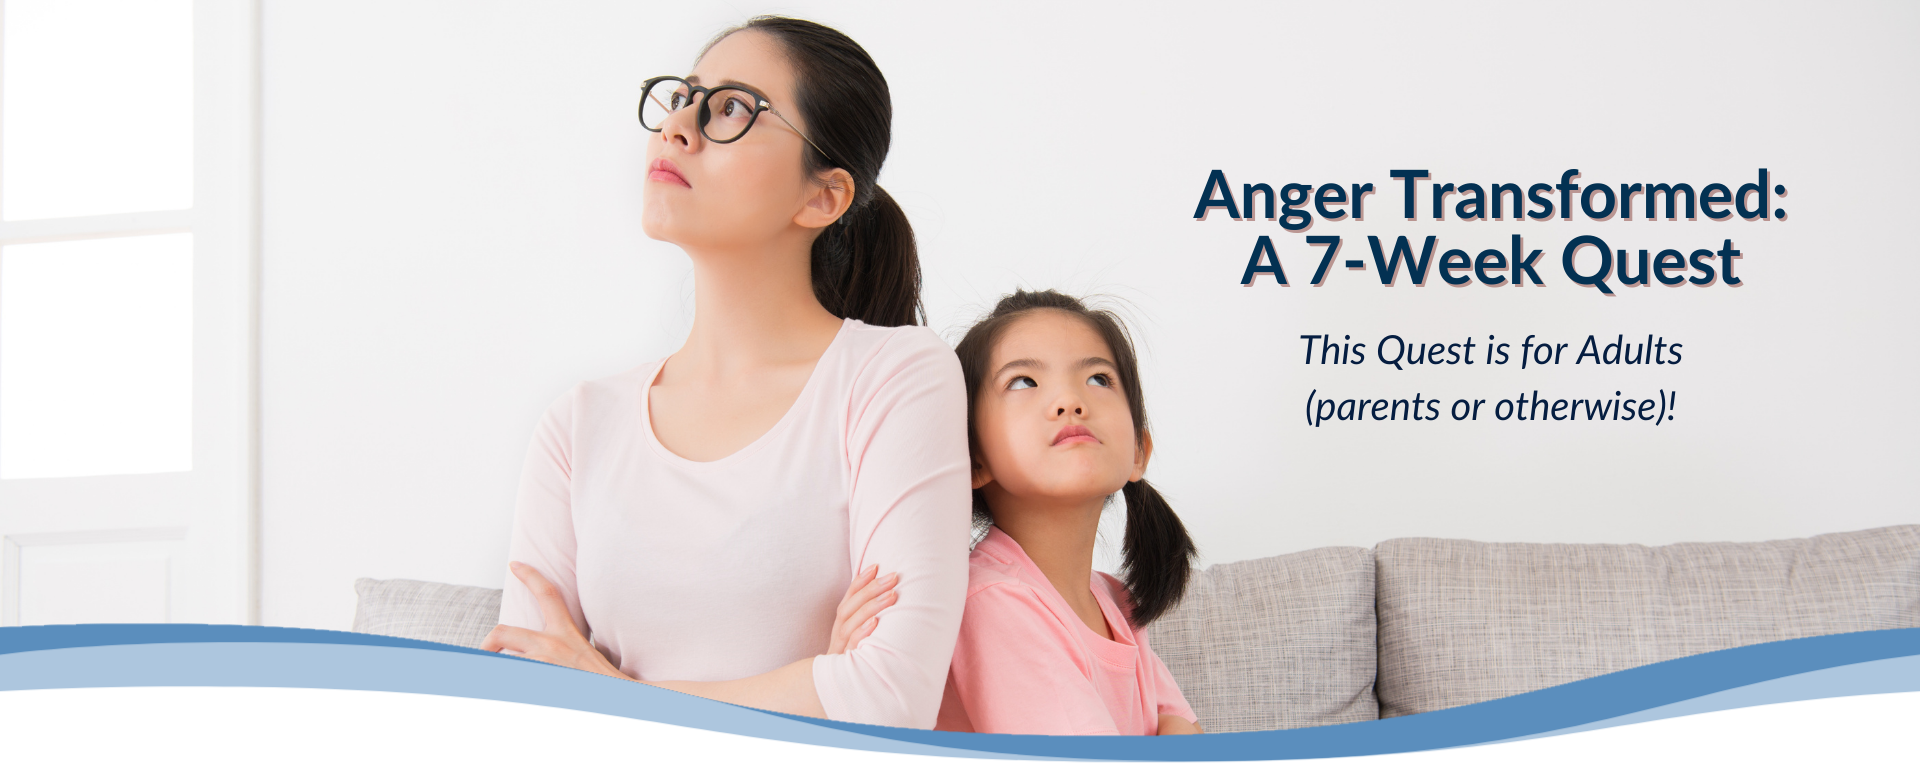 Anger Transformed: A 7-Week Quest